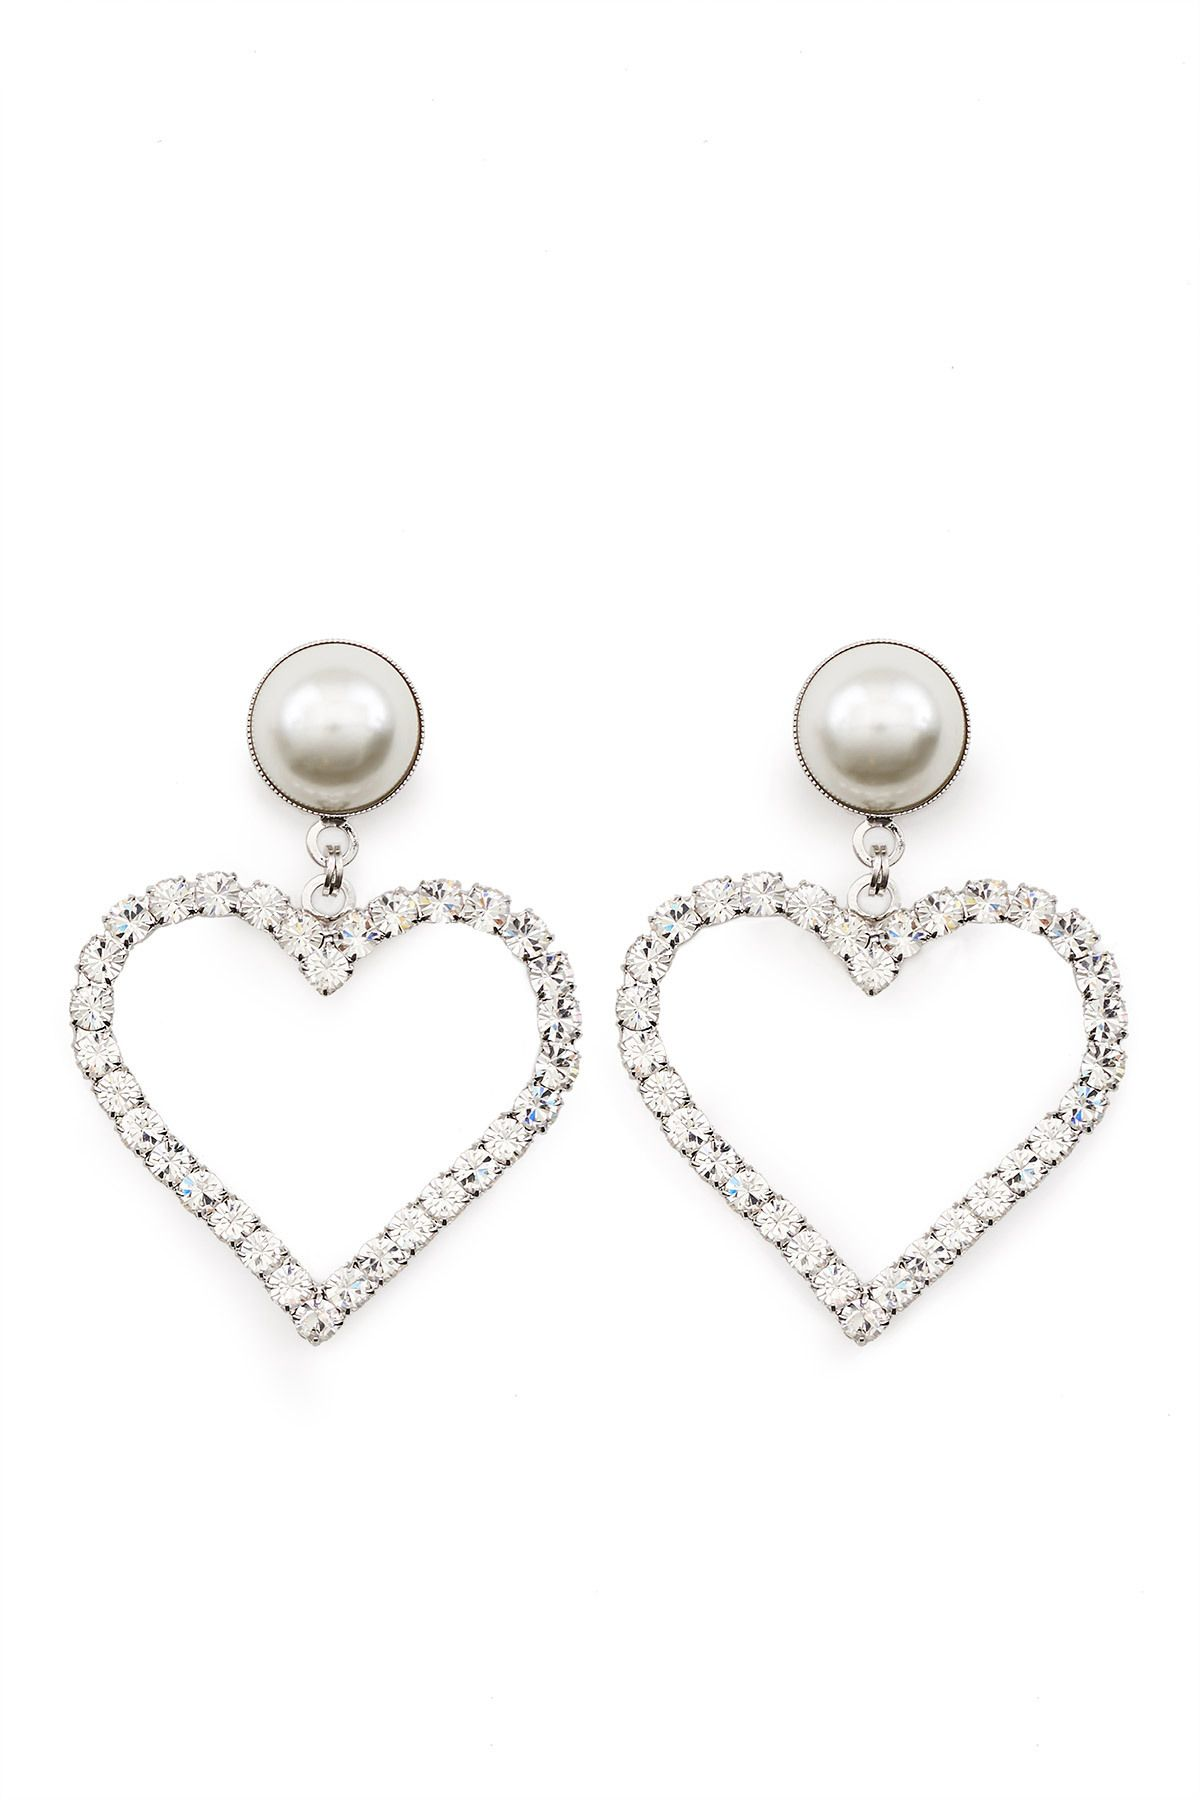 fake pearl Clip-on sparkling crystal earrings silver or gold color